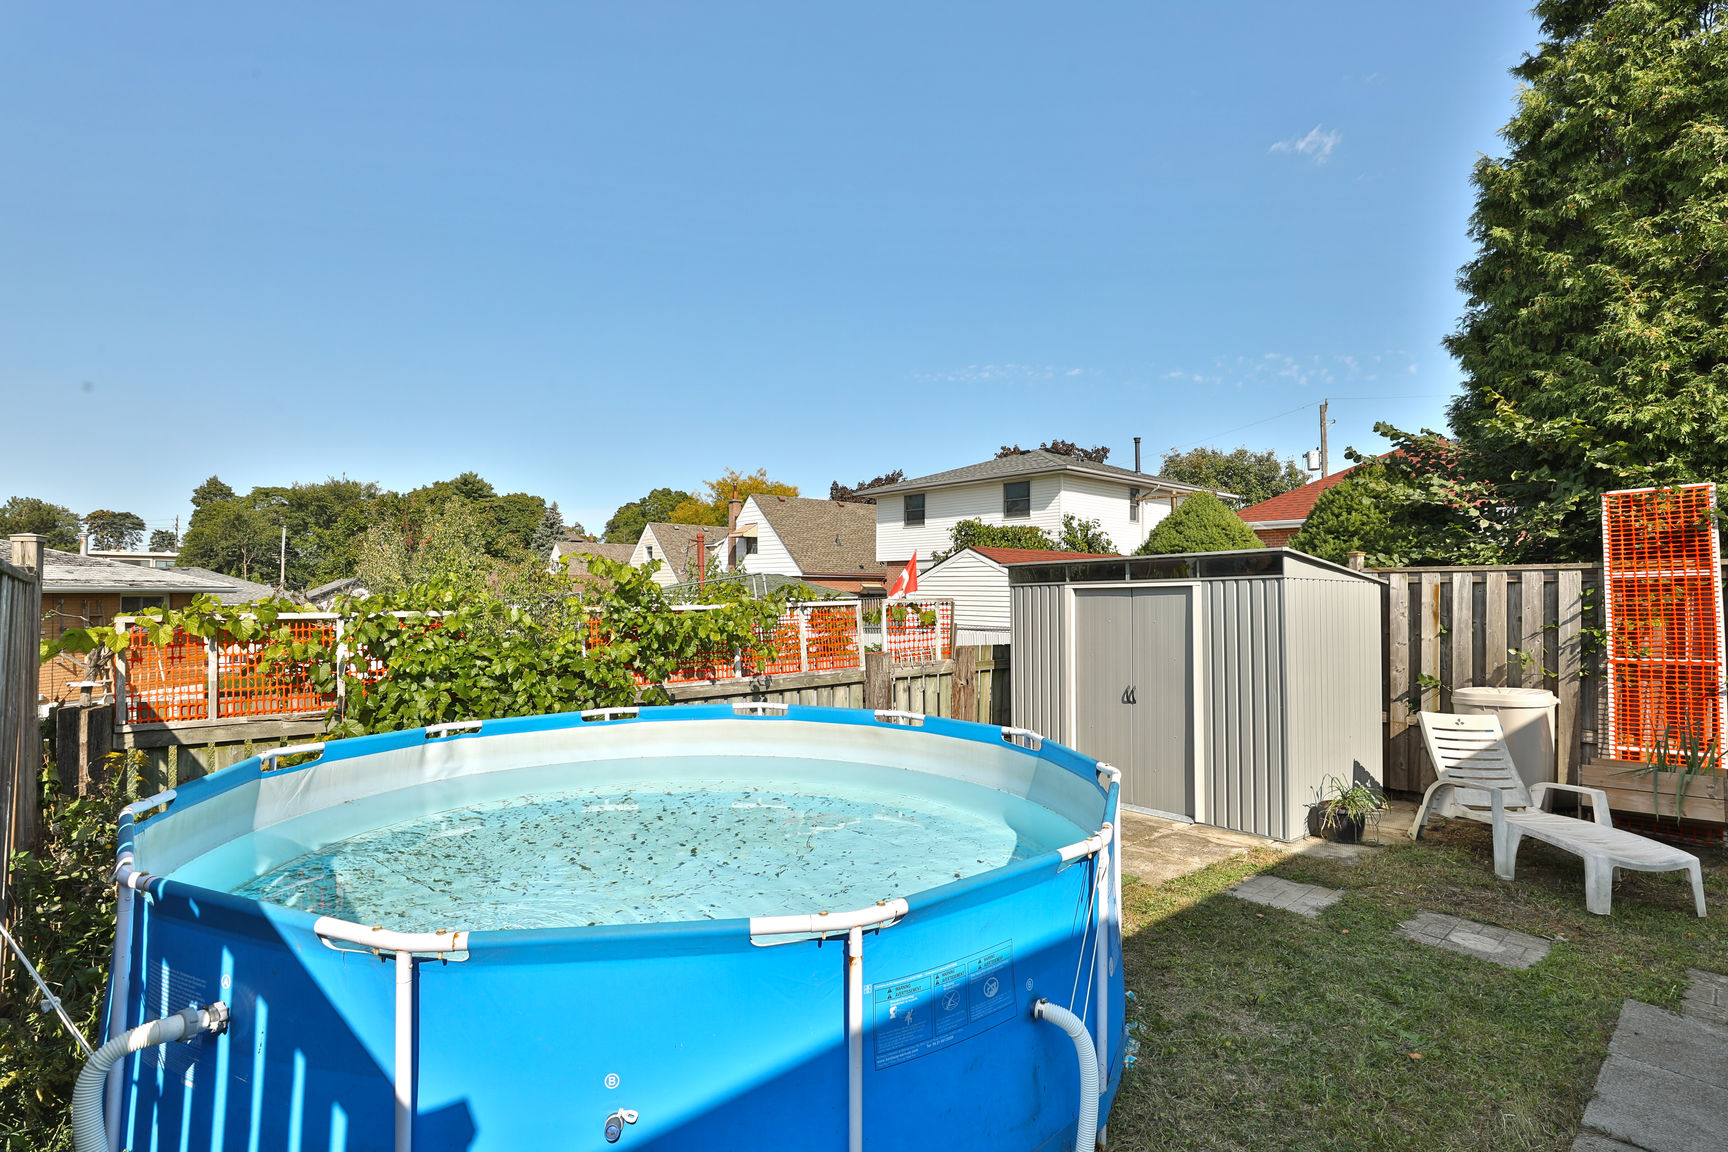 27 - Recently SOLD in Rosedale